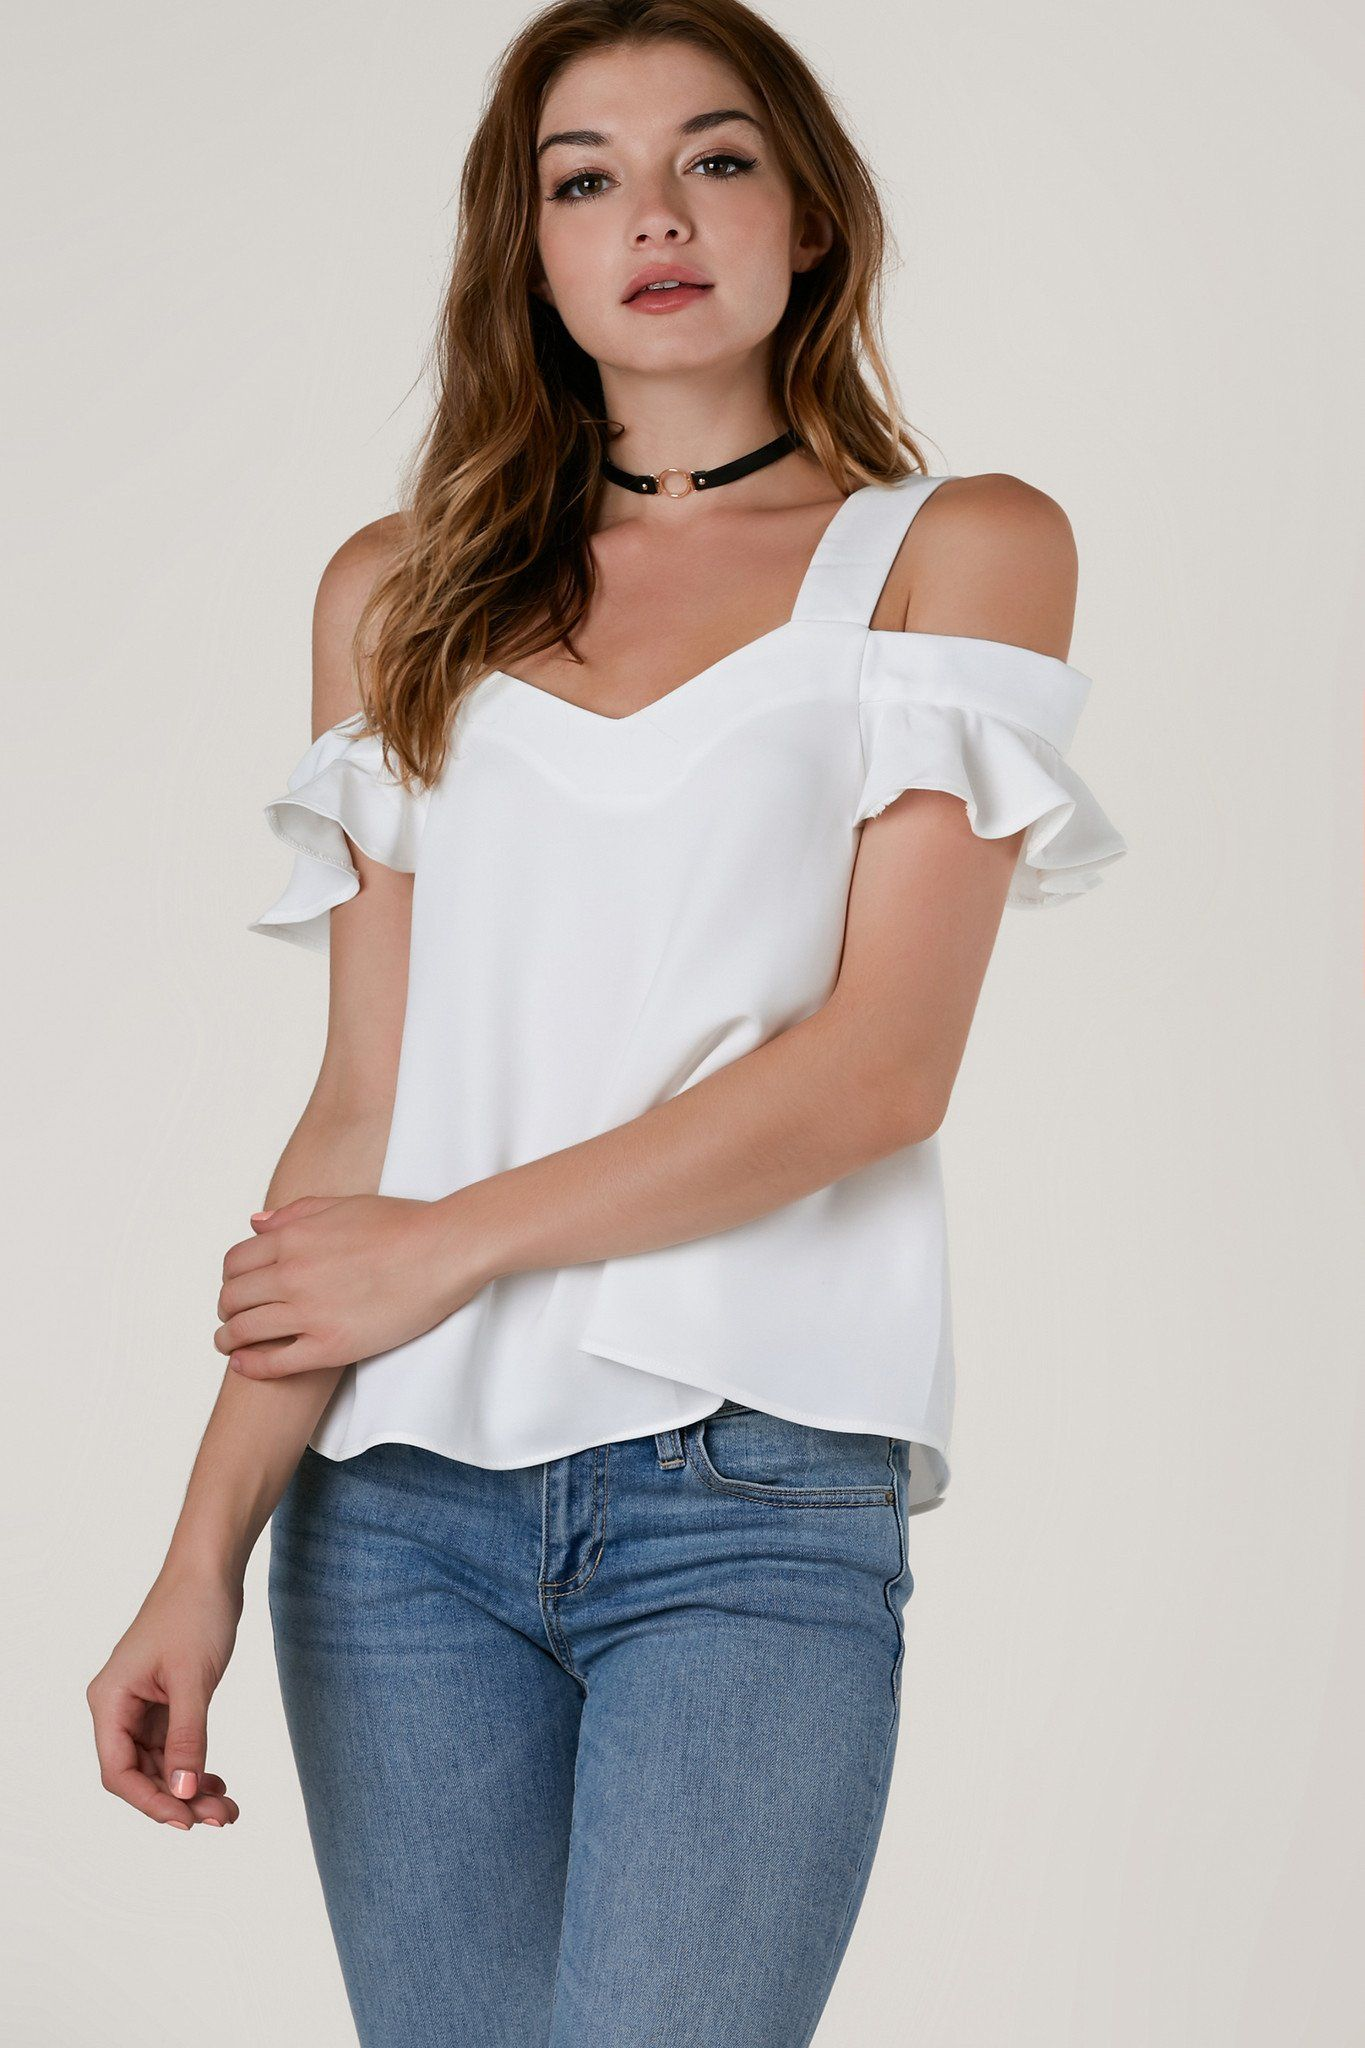 6776db251f4e4 Flirty cold shoulder top with ruffle trim detailing on sleeves. Oversized  fit with soft V-neckline and A-line hem.